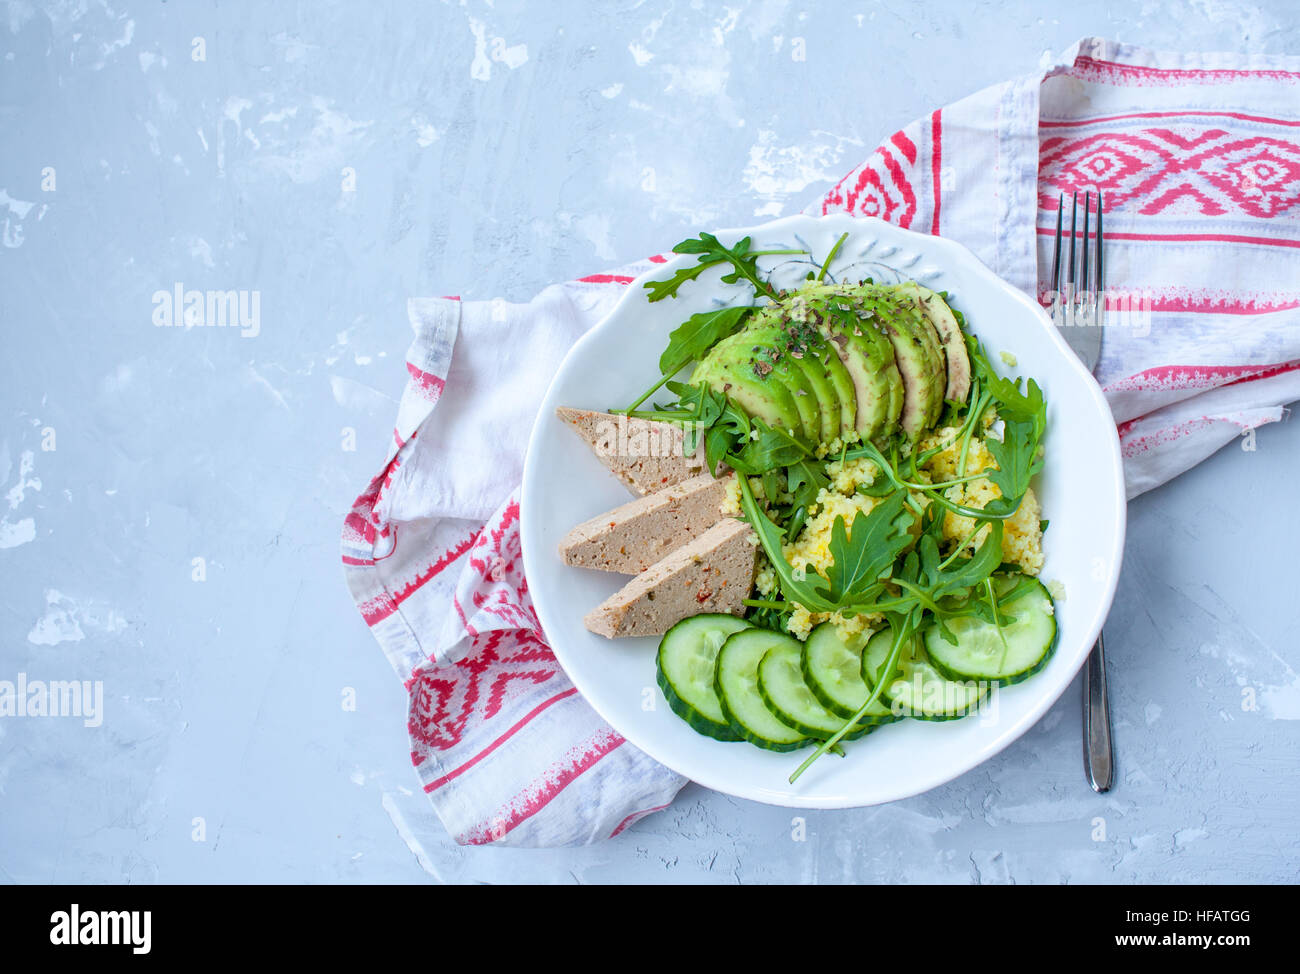 Green salad with avocado, couscous and tofu. Love for a healthy raw food concept. - Stock Image